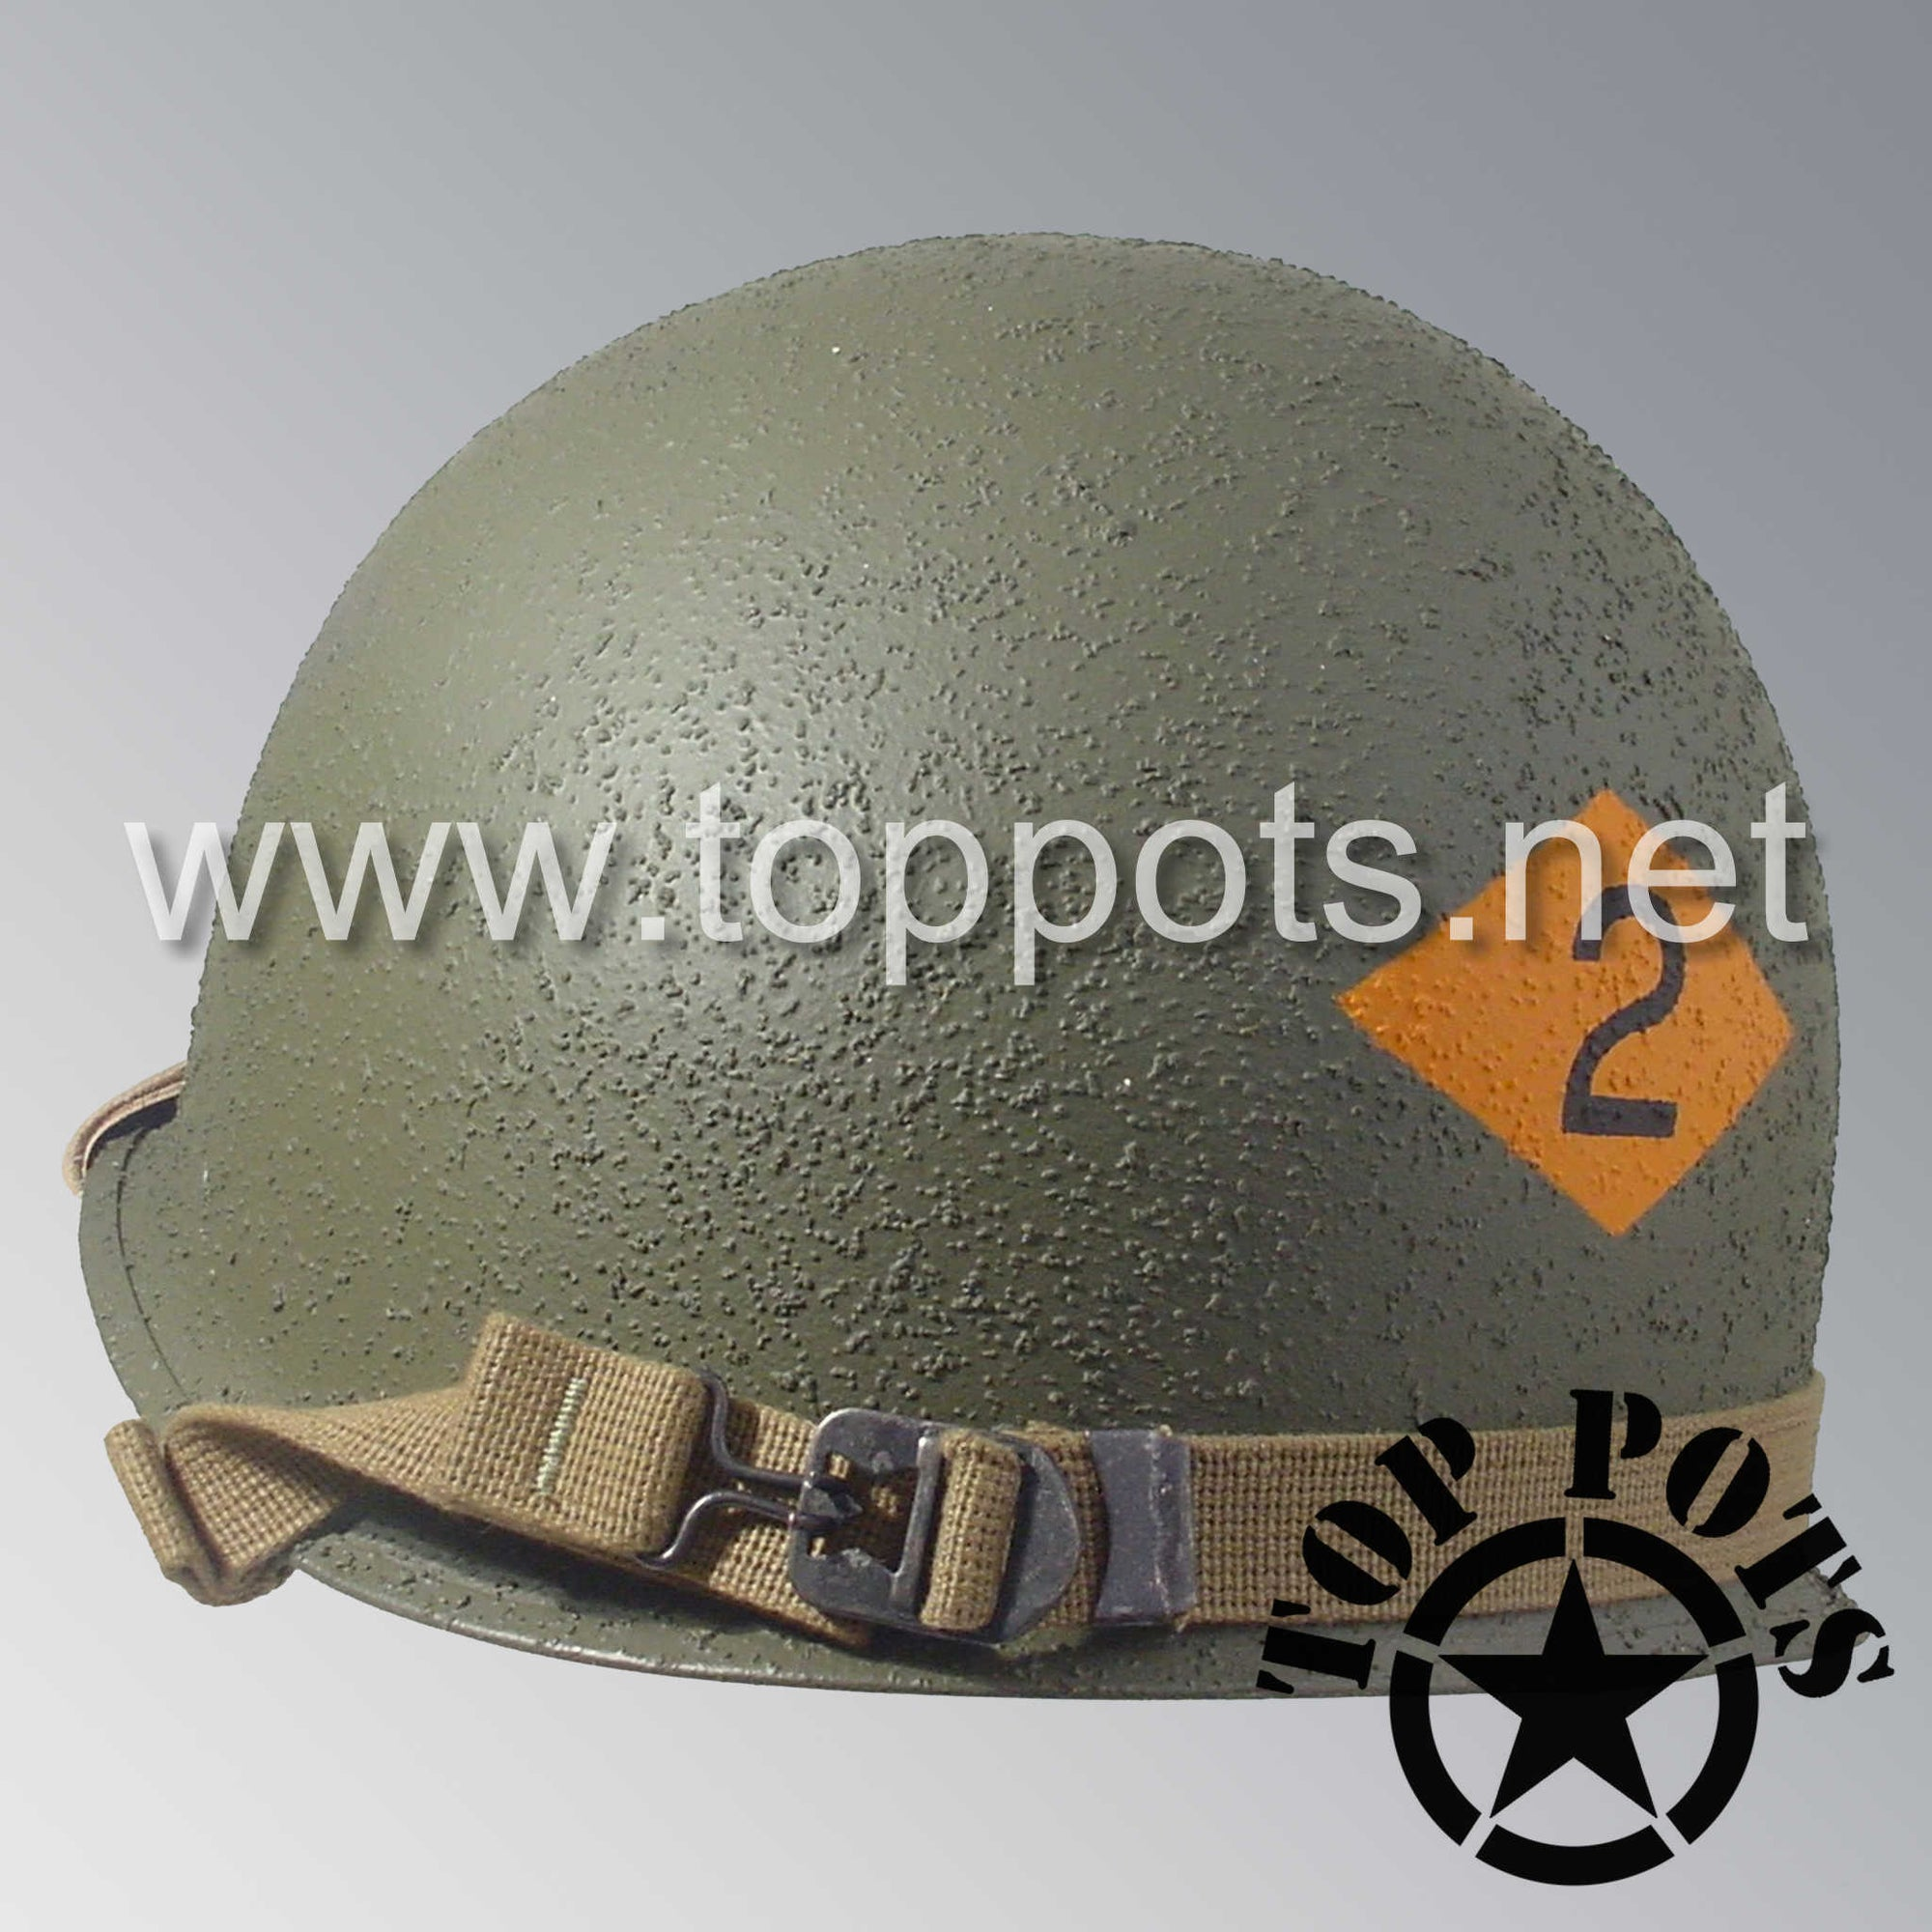 Image 5 of WWII US Army Restored Original M1 Infantry Helmet Swivel Bale Shell and Liner with 2nd Ranger Enlisted Emblem